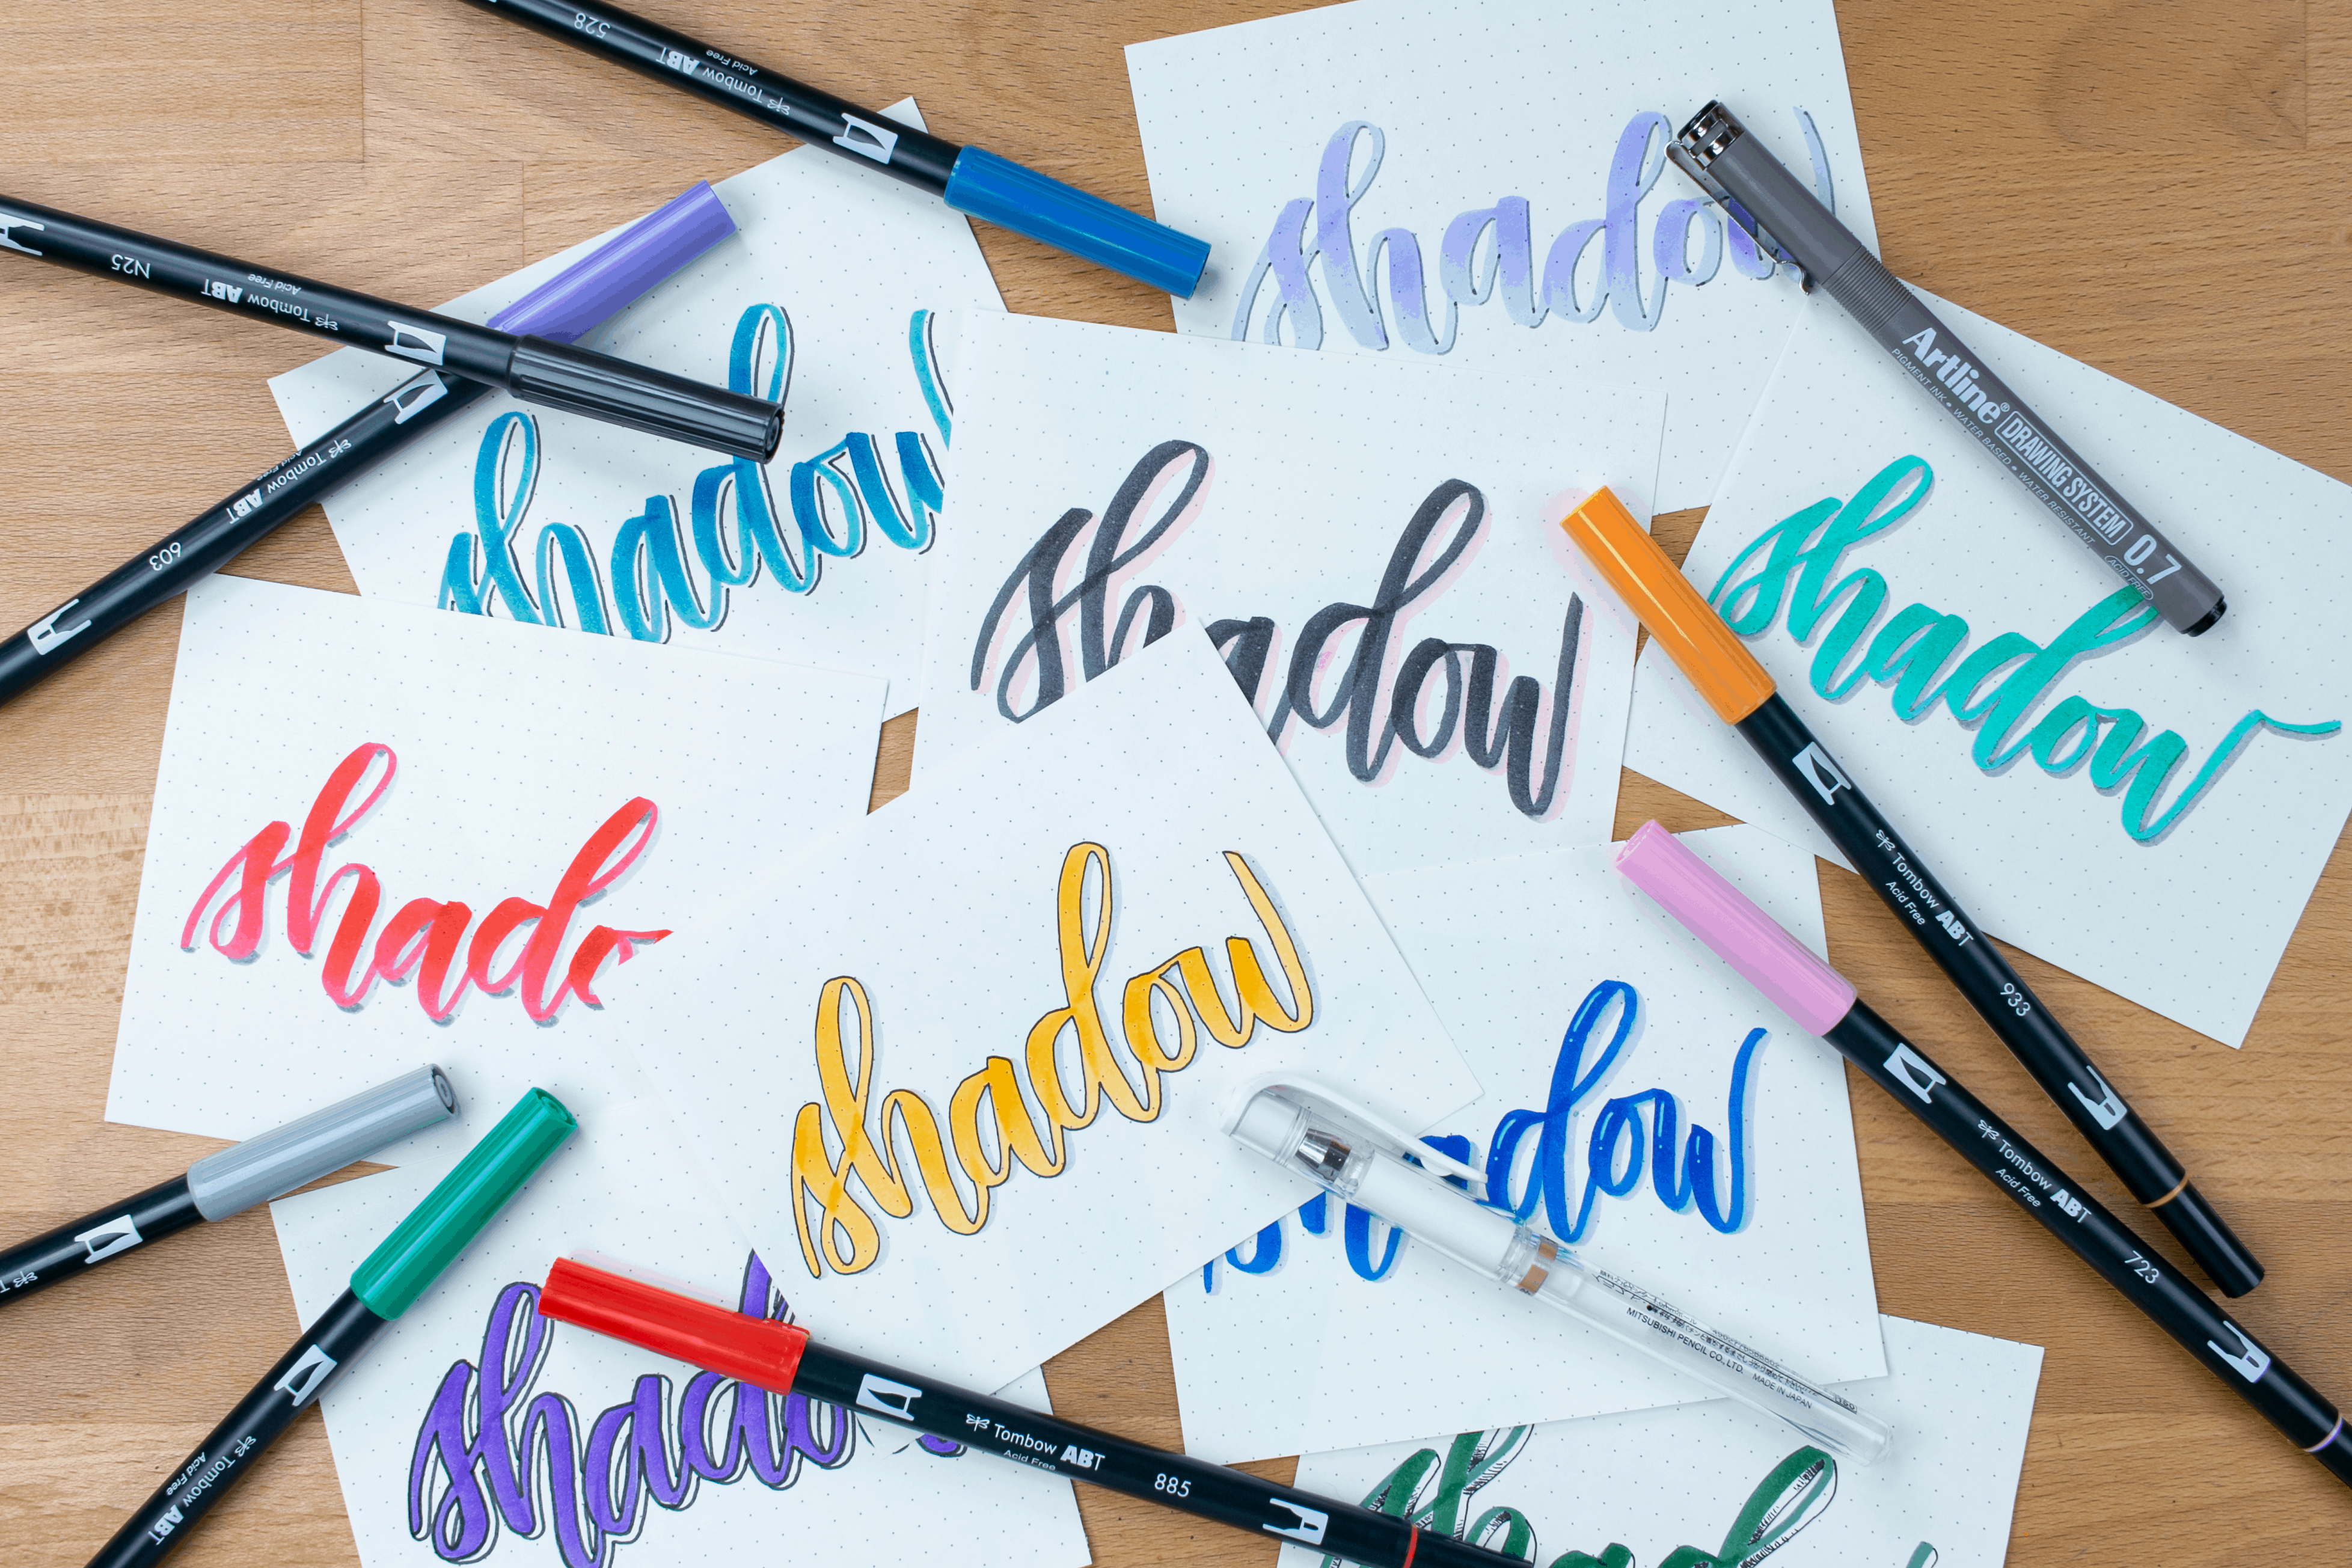 Pile of all brush lettering shadows examples with pens on desk.